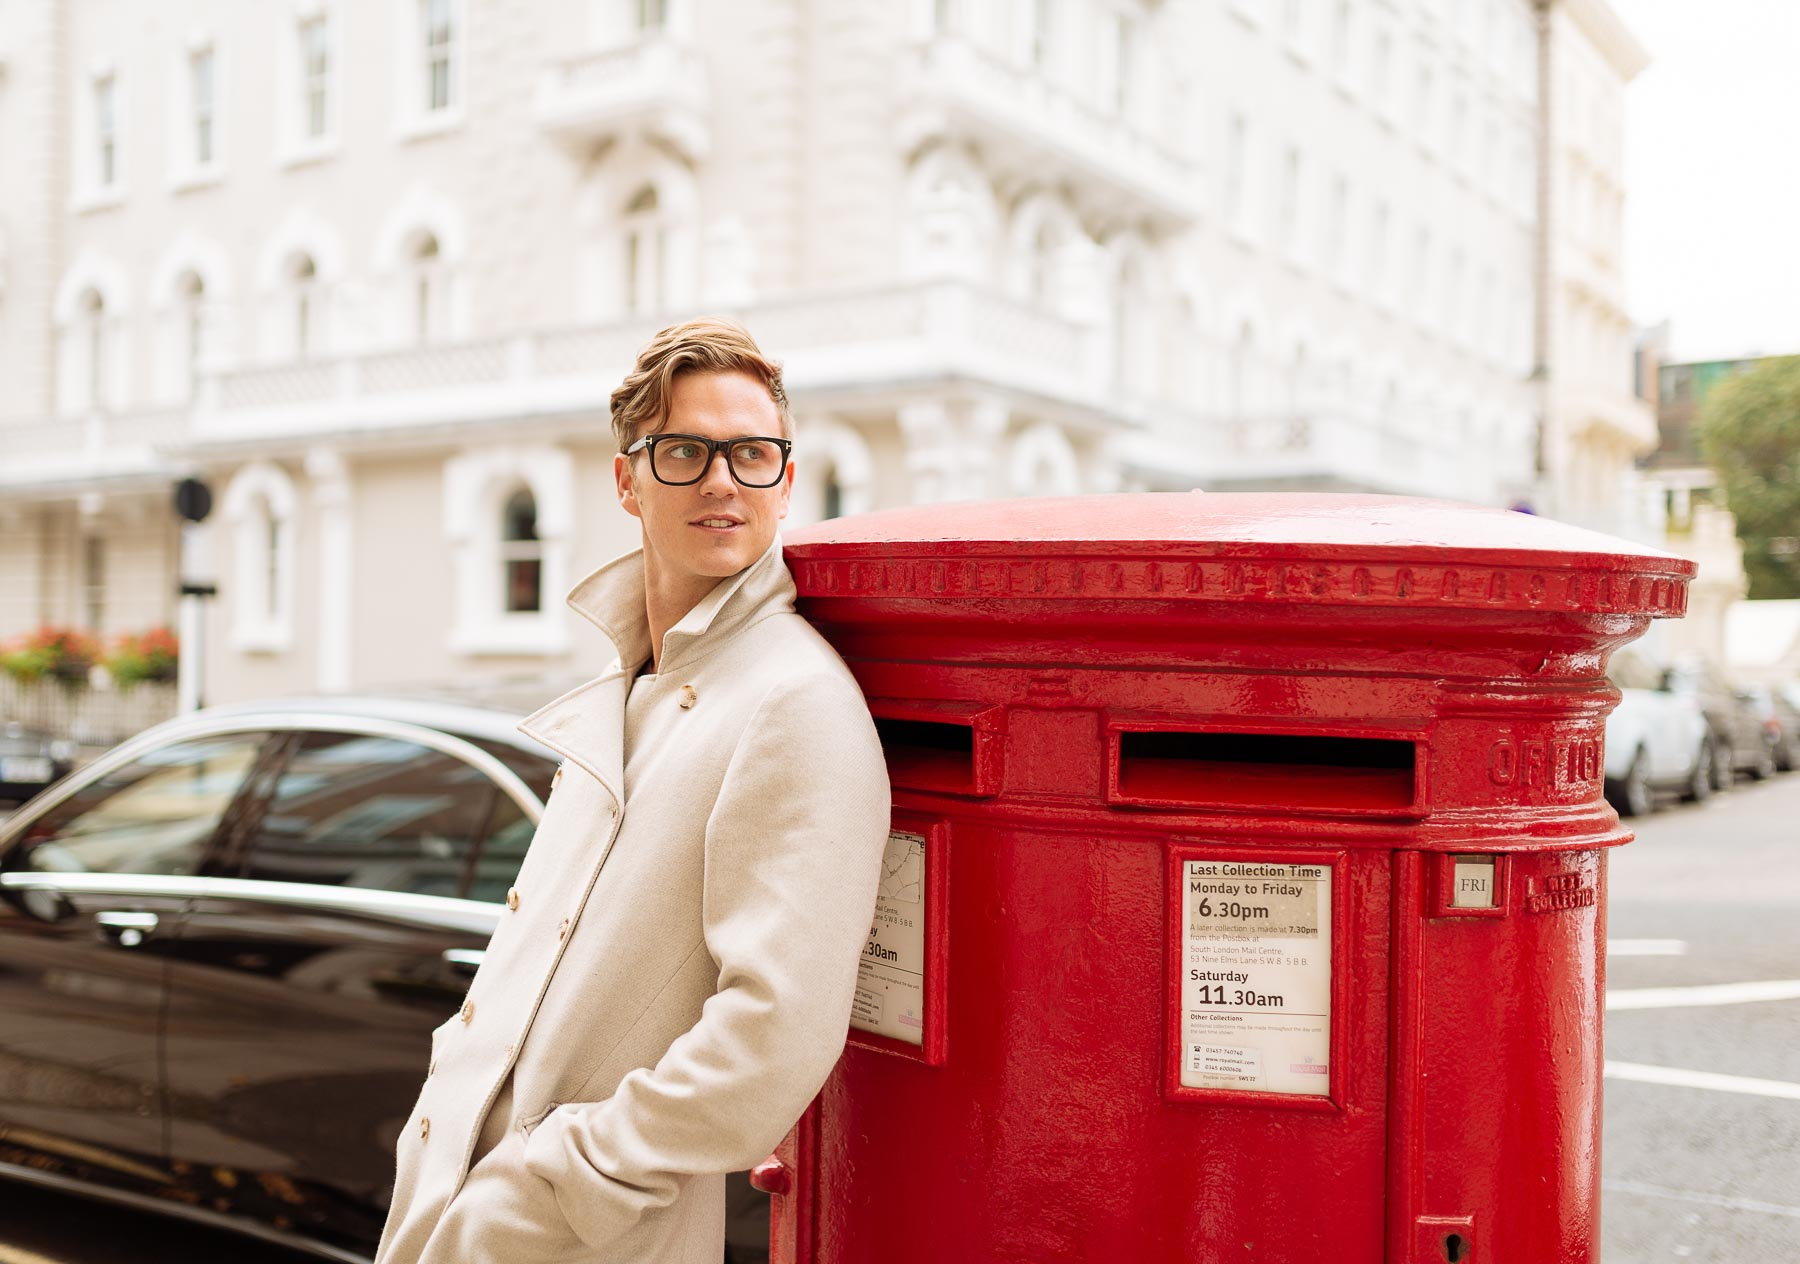 man-waiting-letterbox-red-fashion-kensington-london-lifestyle-17